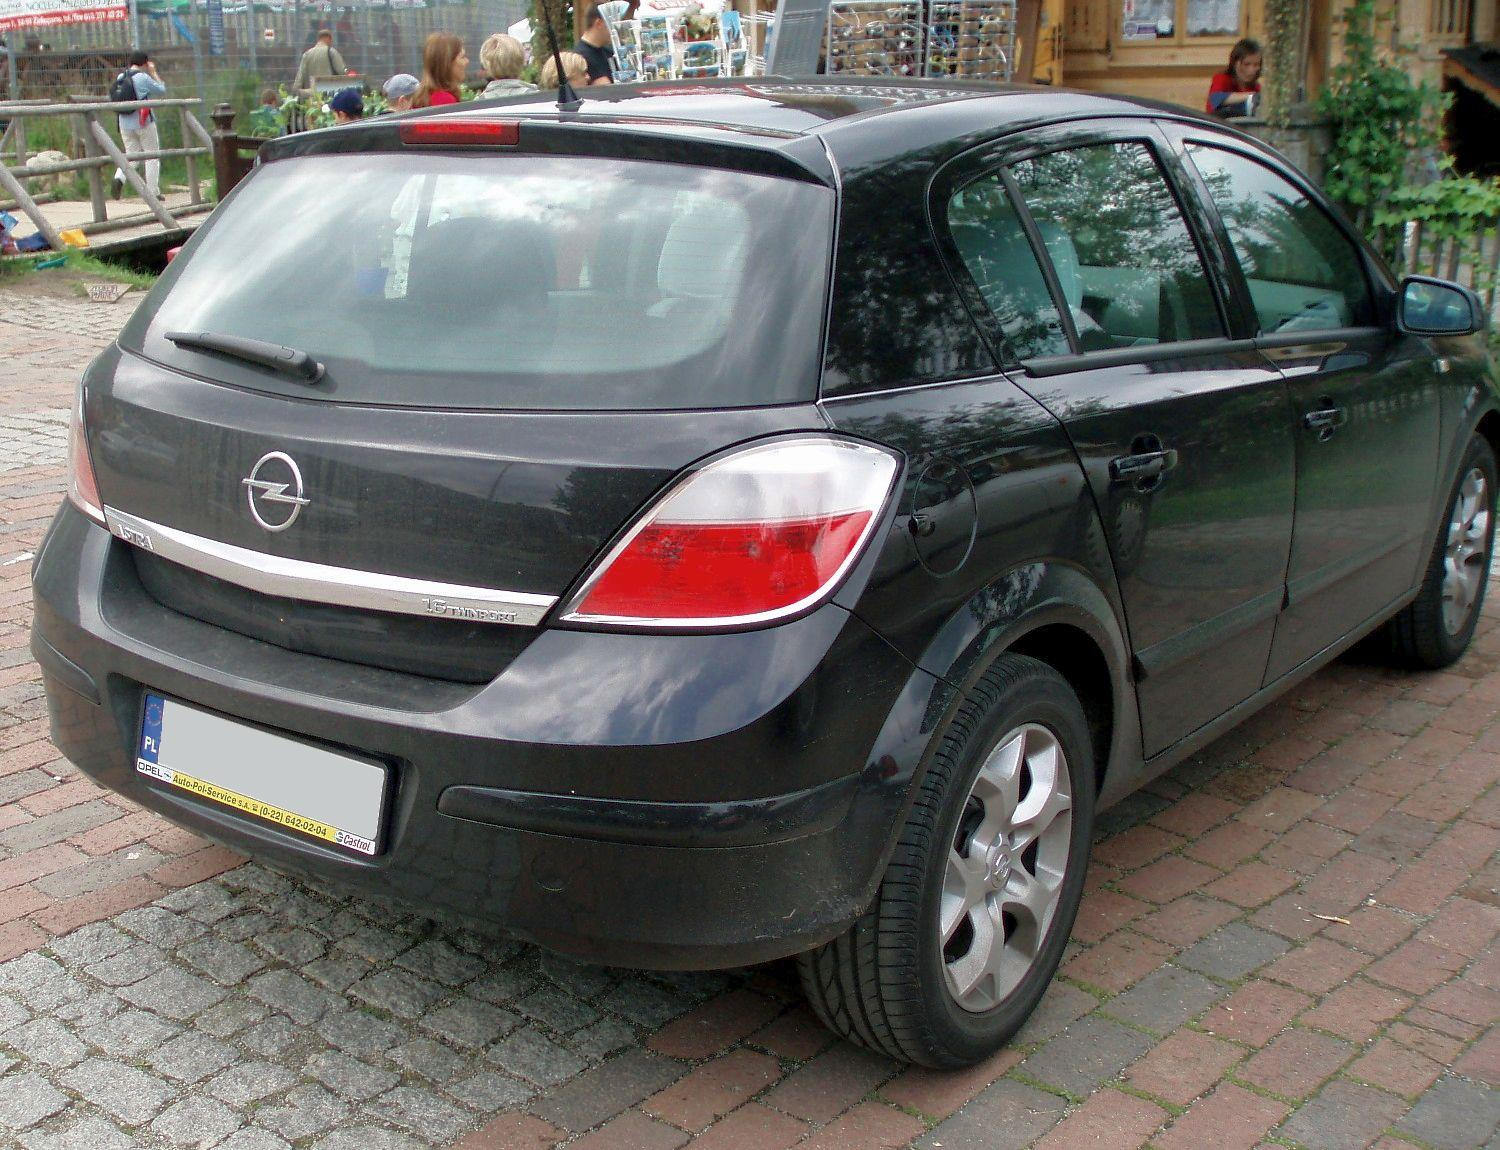 Opel astra 16 twinport (580 comments) Views 40635 Rating 67